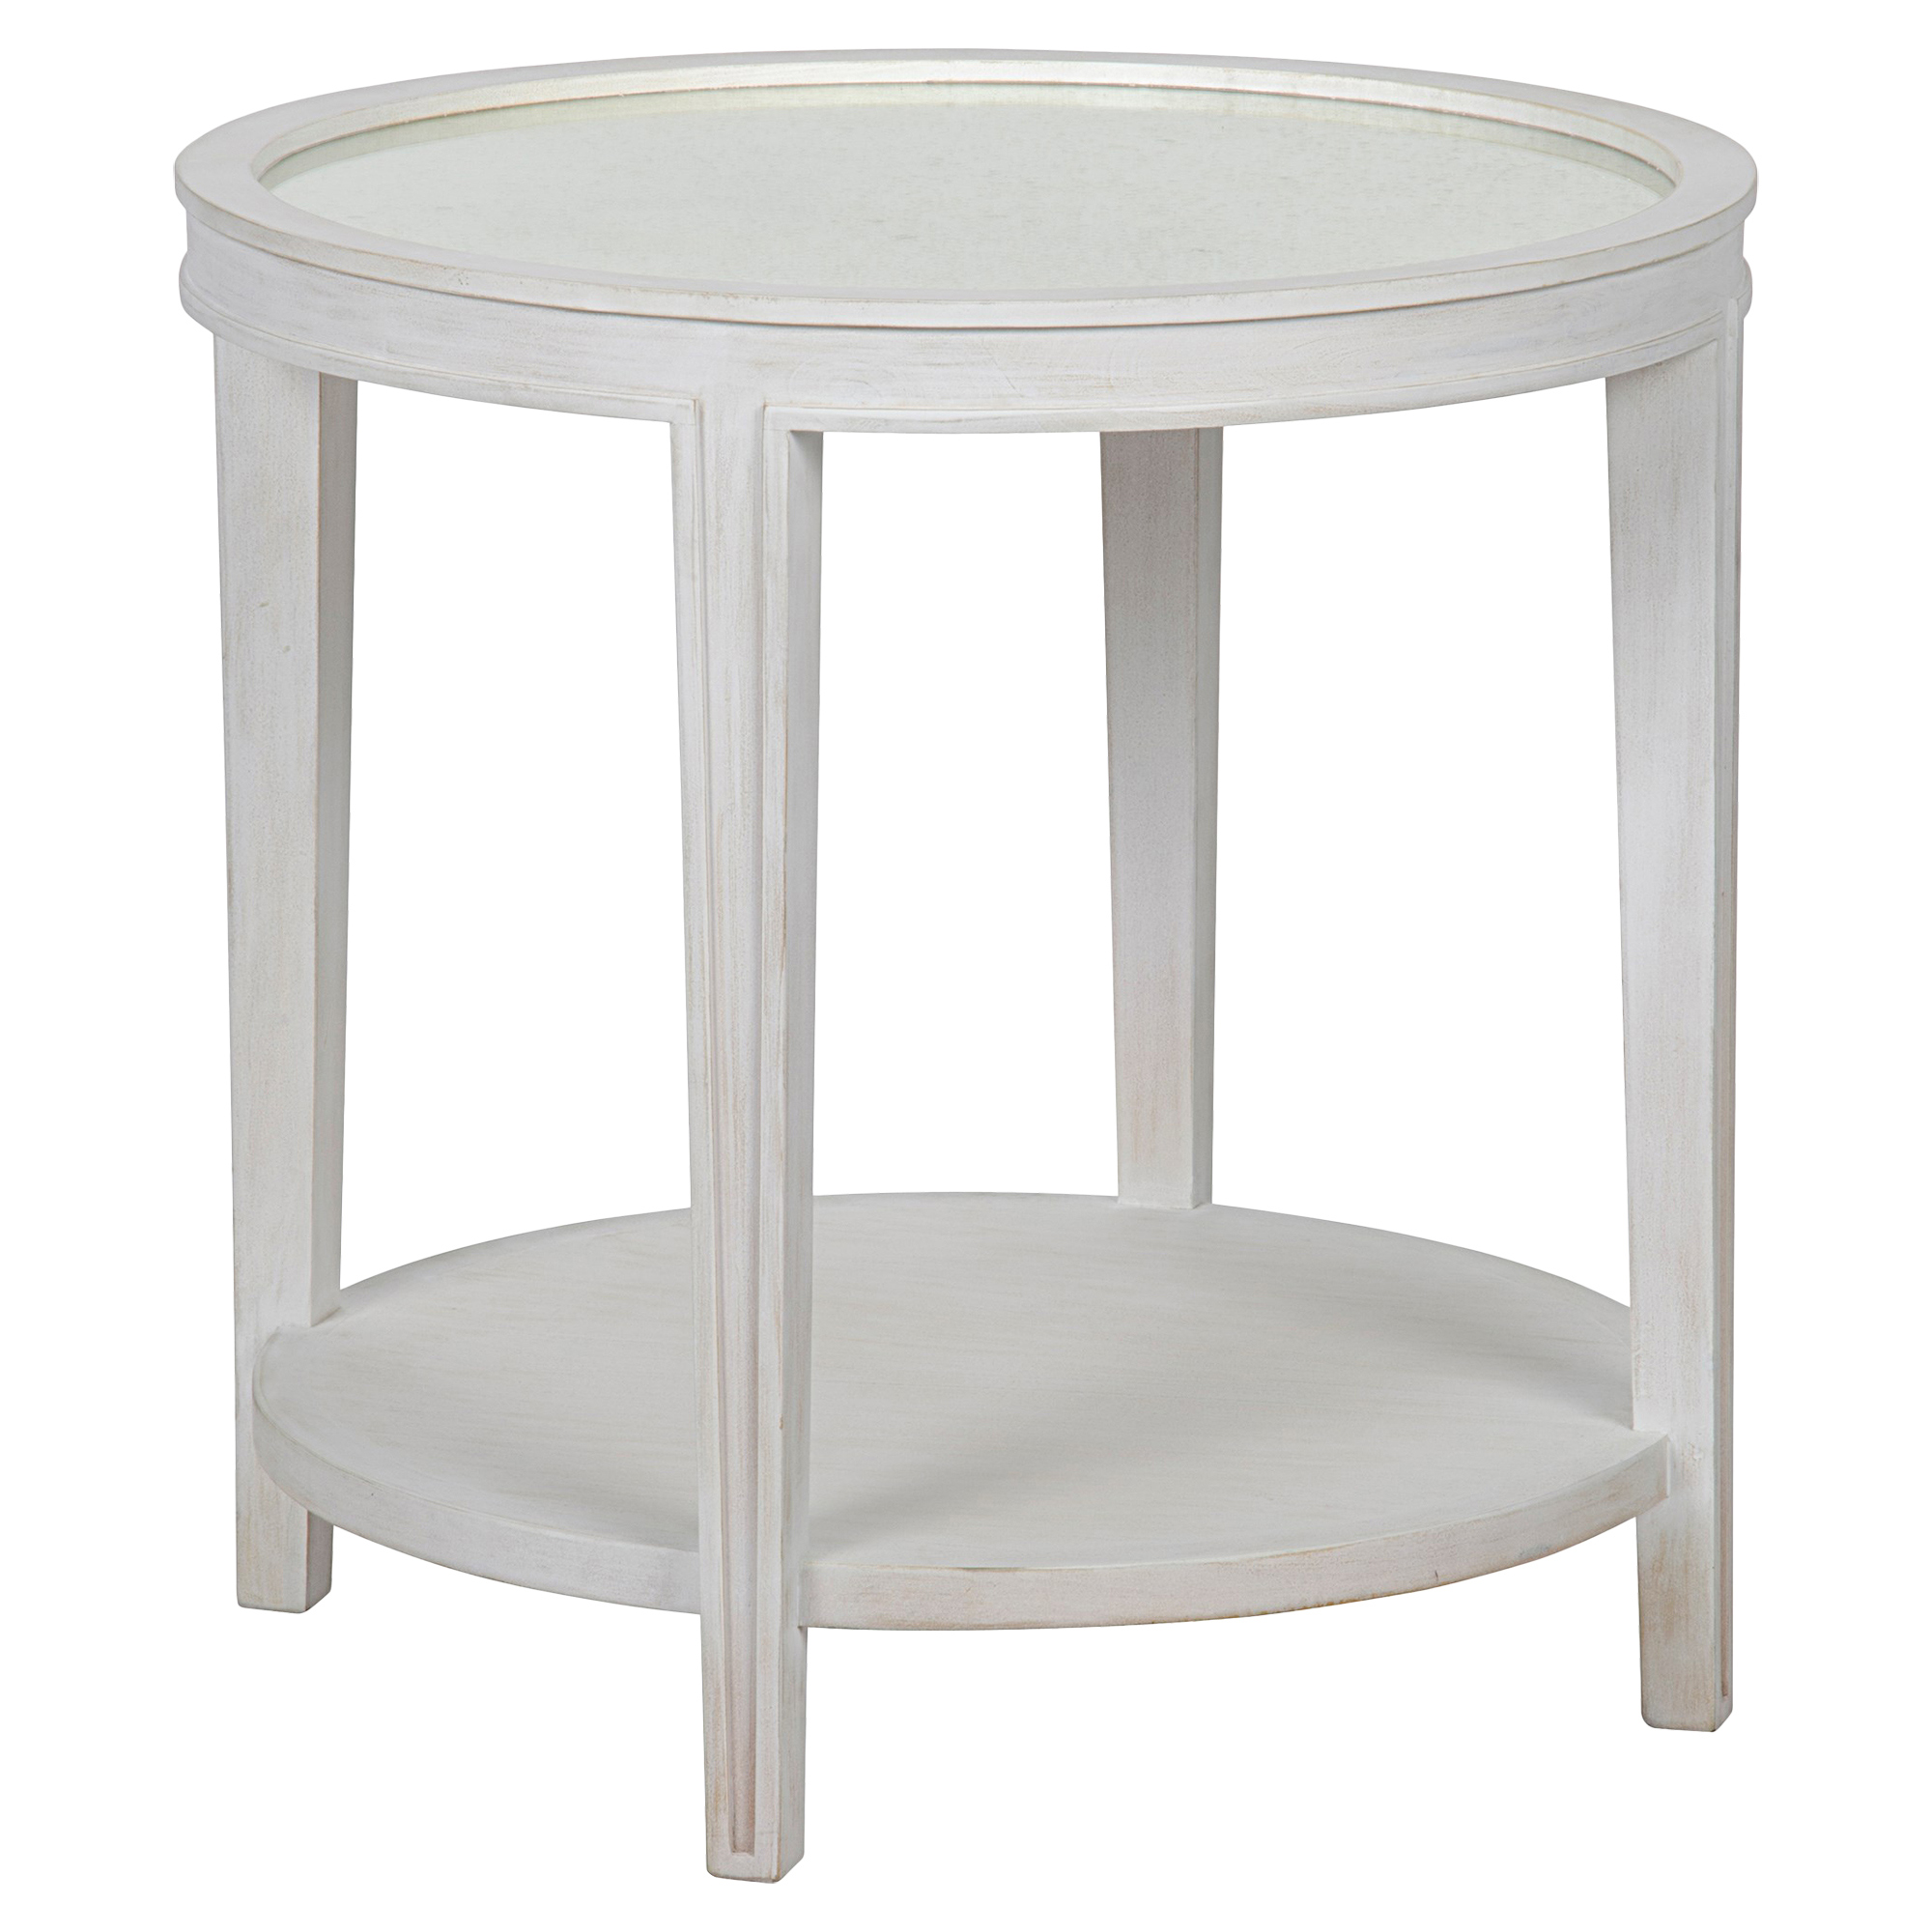 Sita French Country White Washed Antique Mirror Side Table